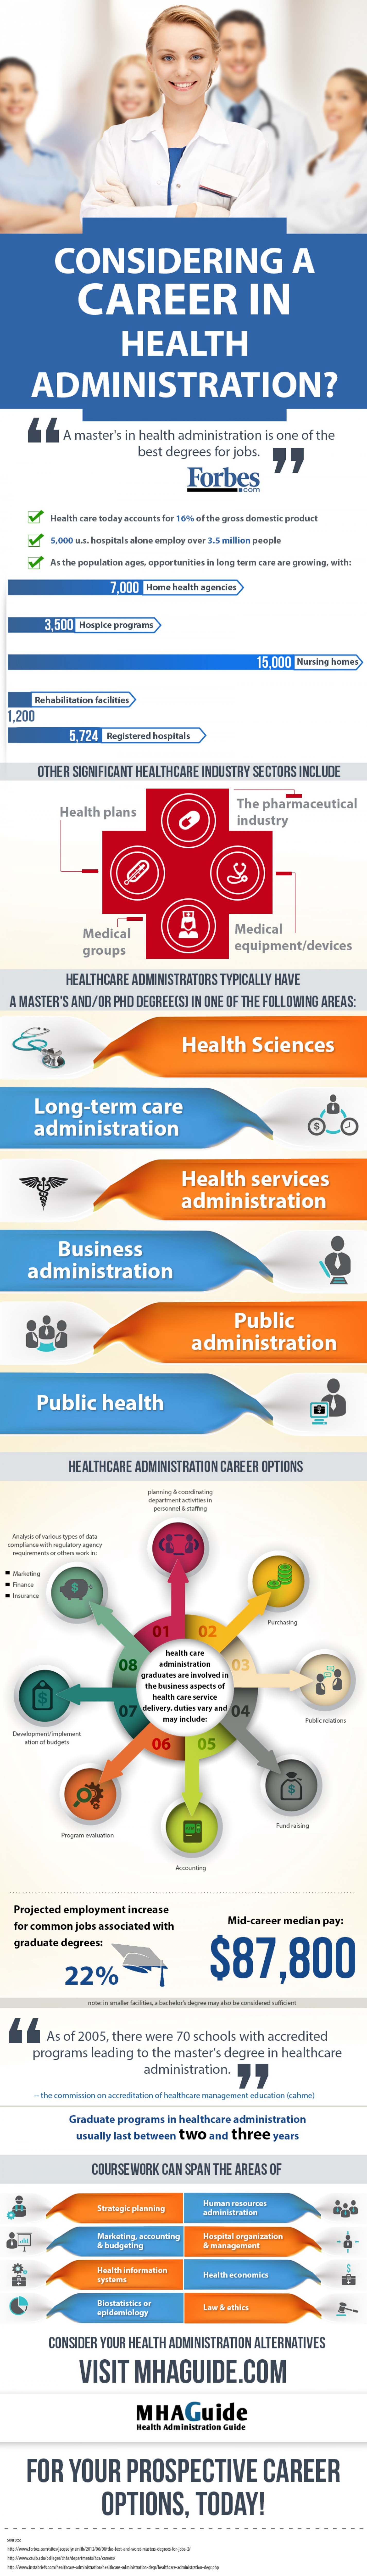 Considering a career in health administration